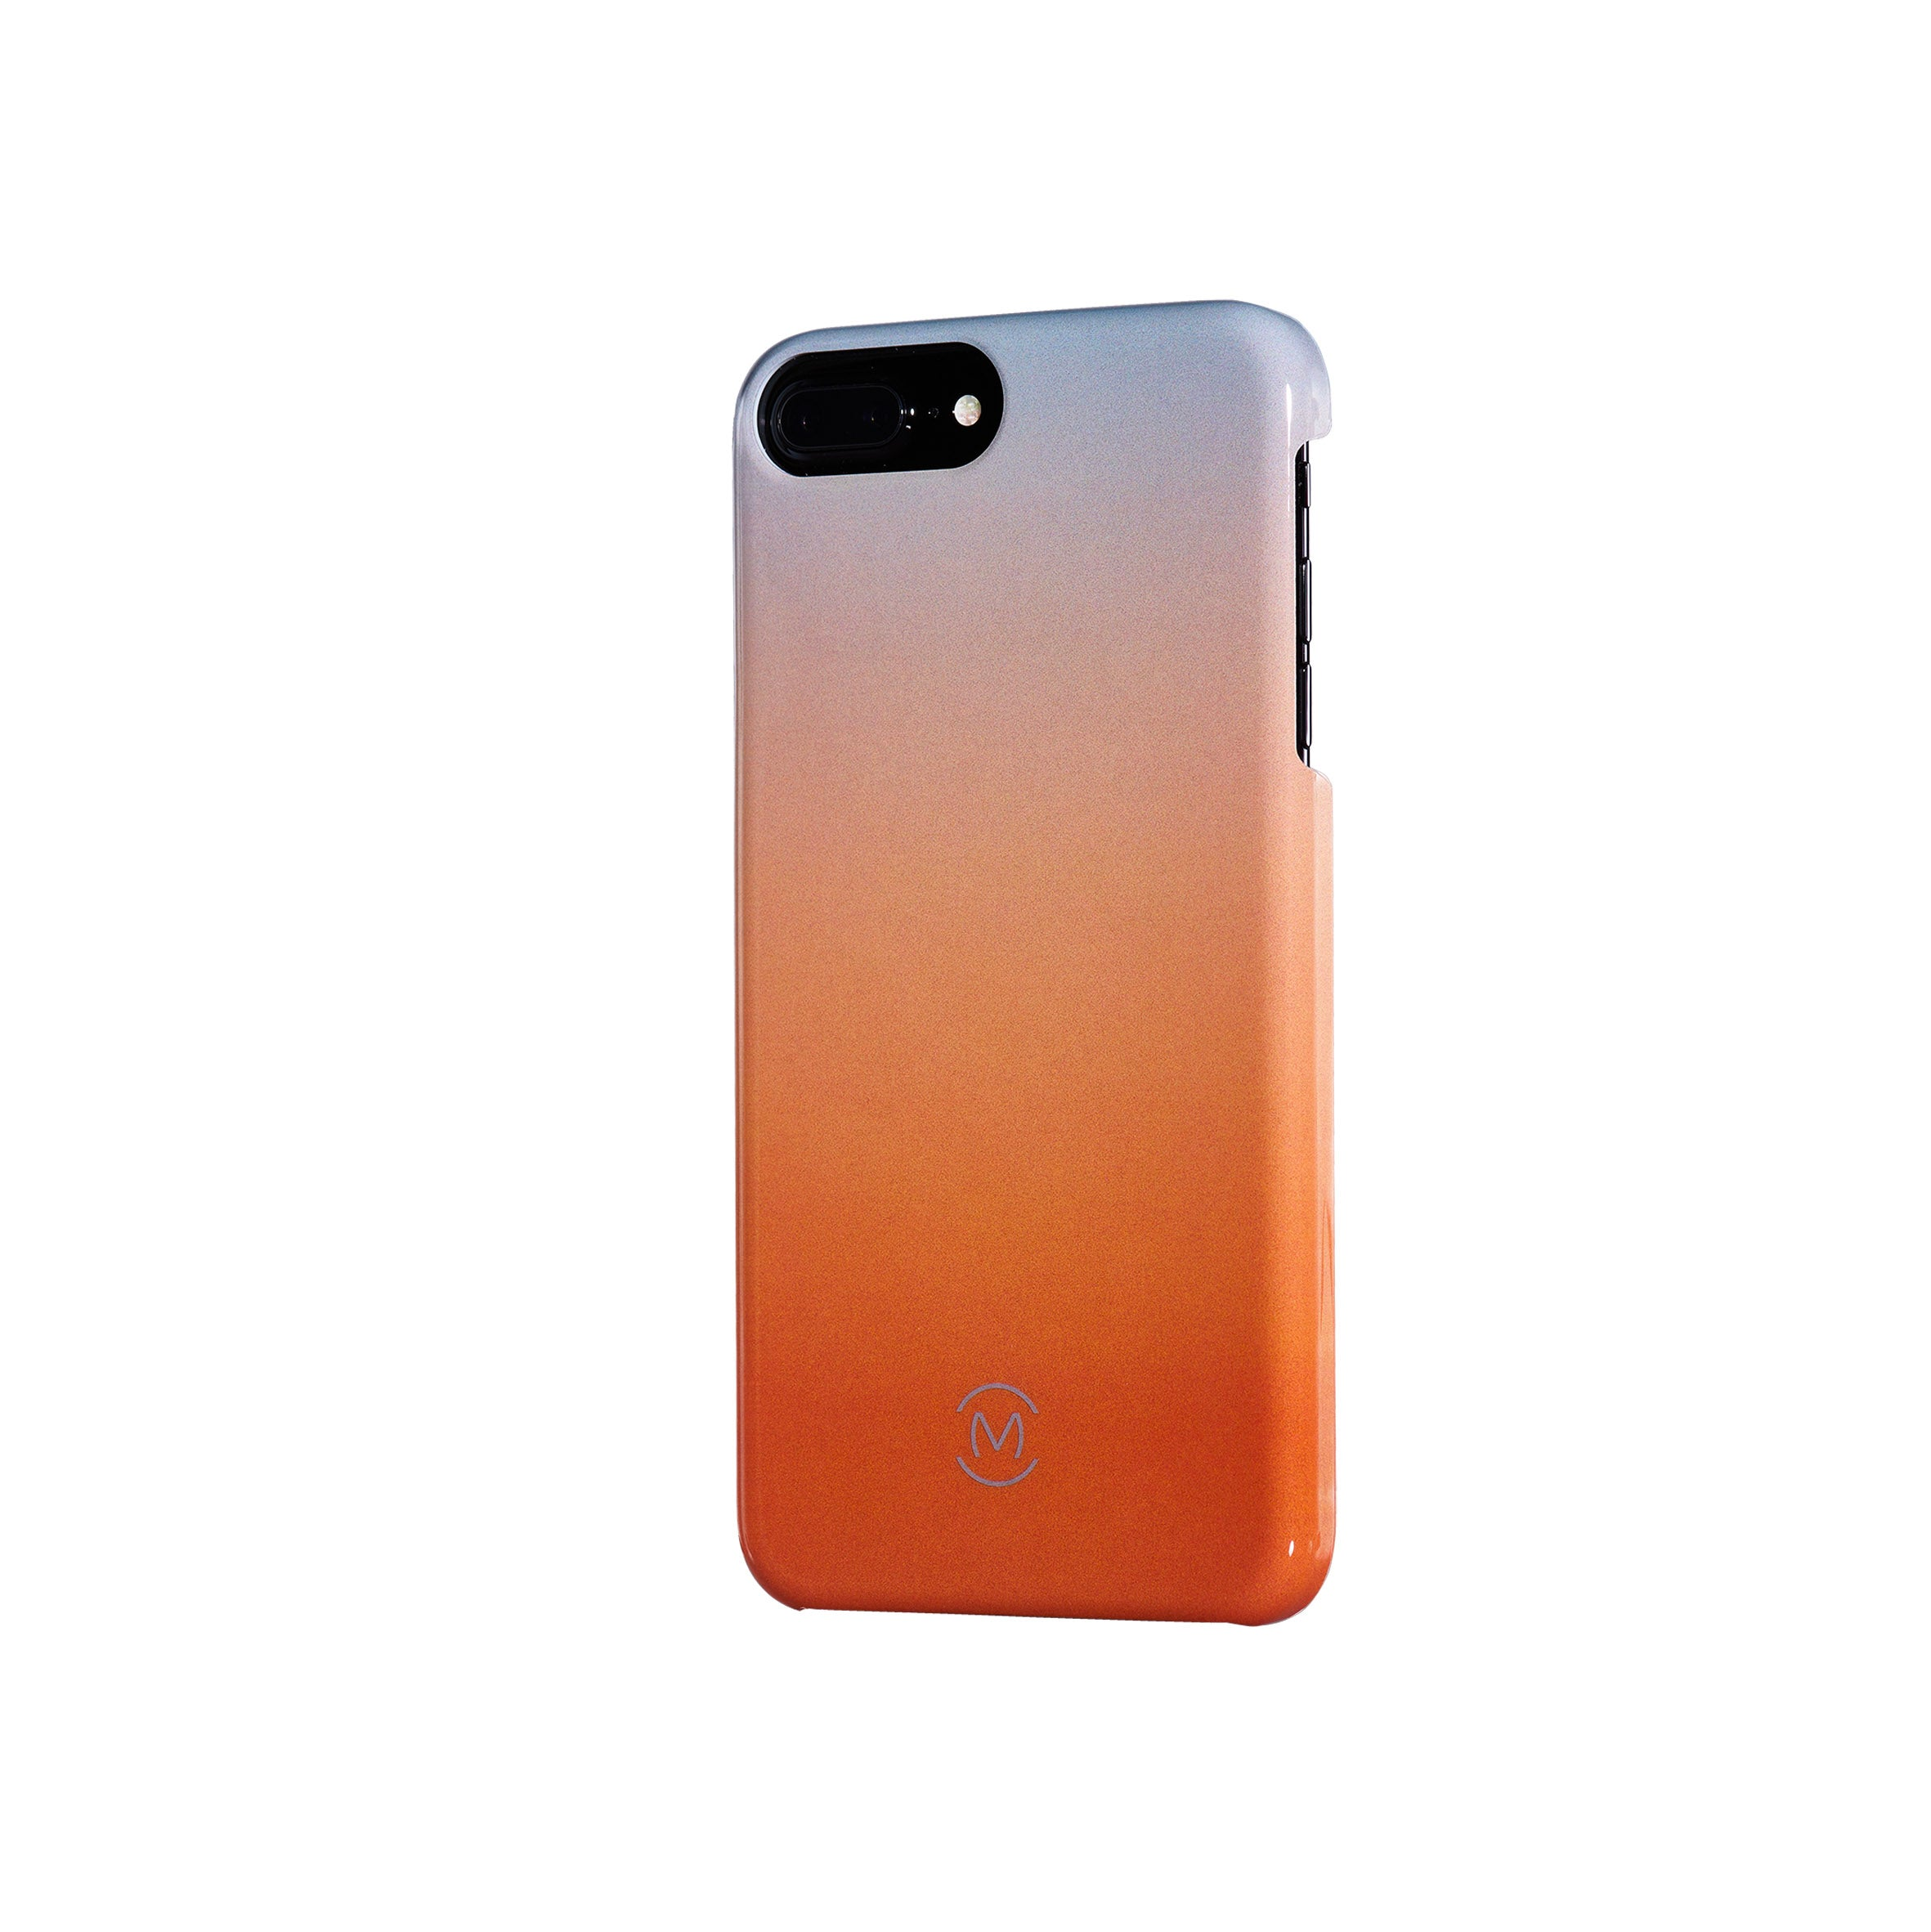 Gray-Orange Gradient Harvest Moon Recyclable Phone Case by Movement for iPhone 8 Plus, iPhone 7 Plus, iPhone 6s Plus, and iPhone 6 Plus (Right)